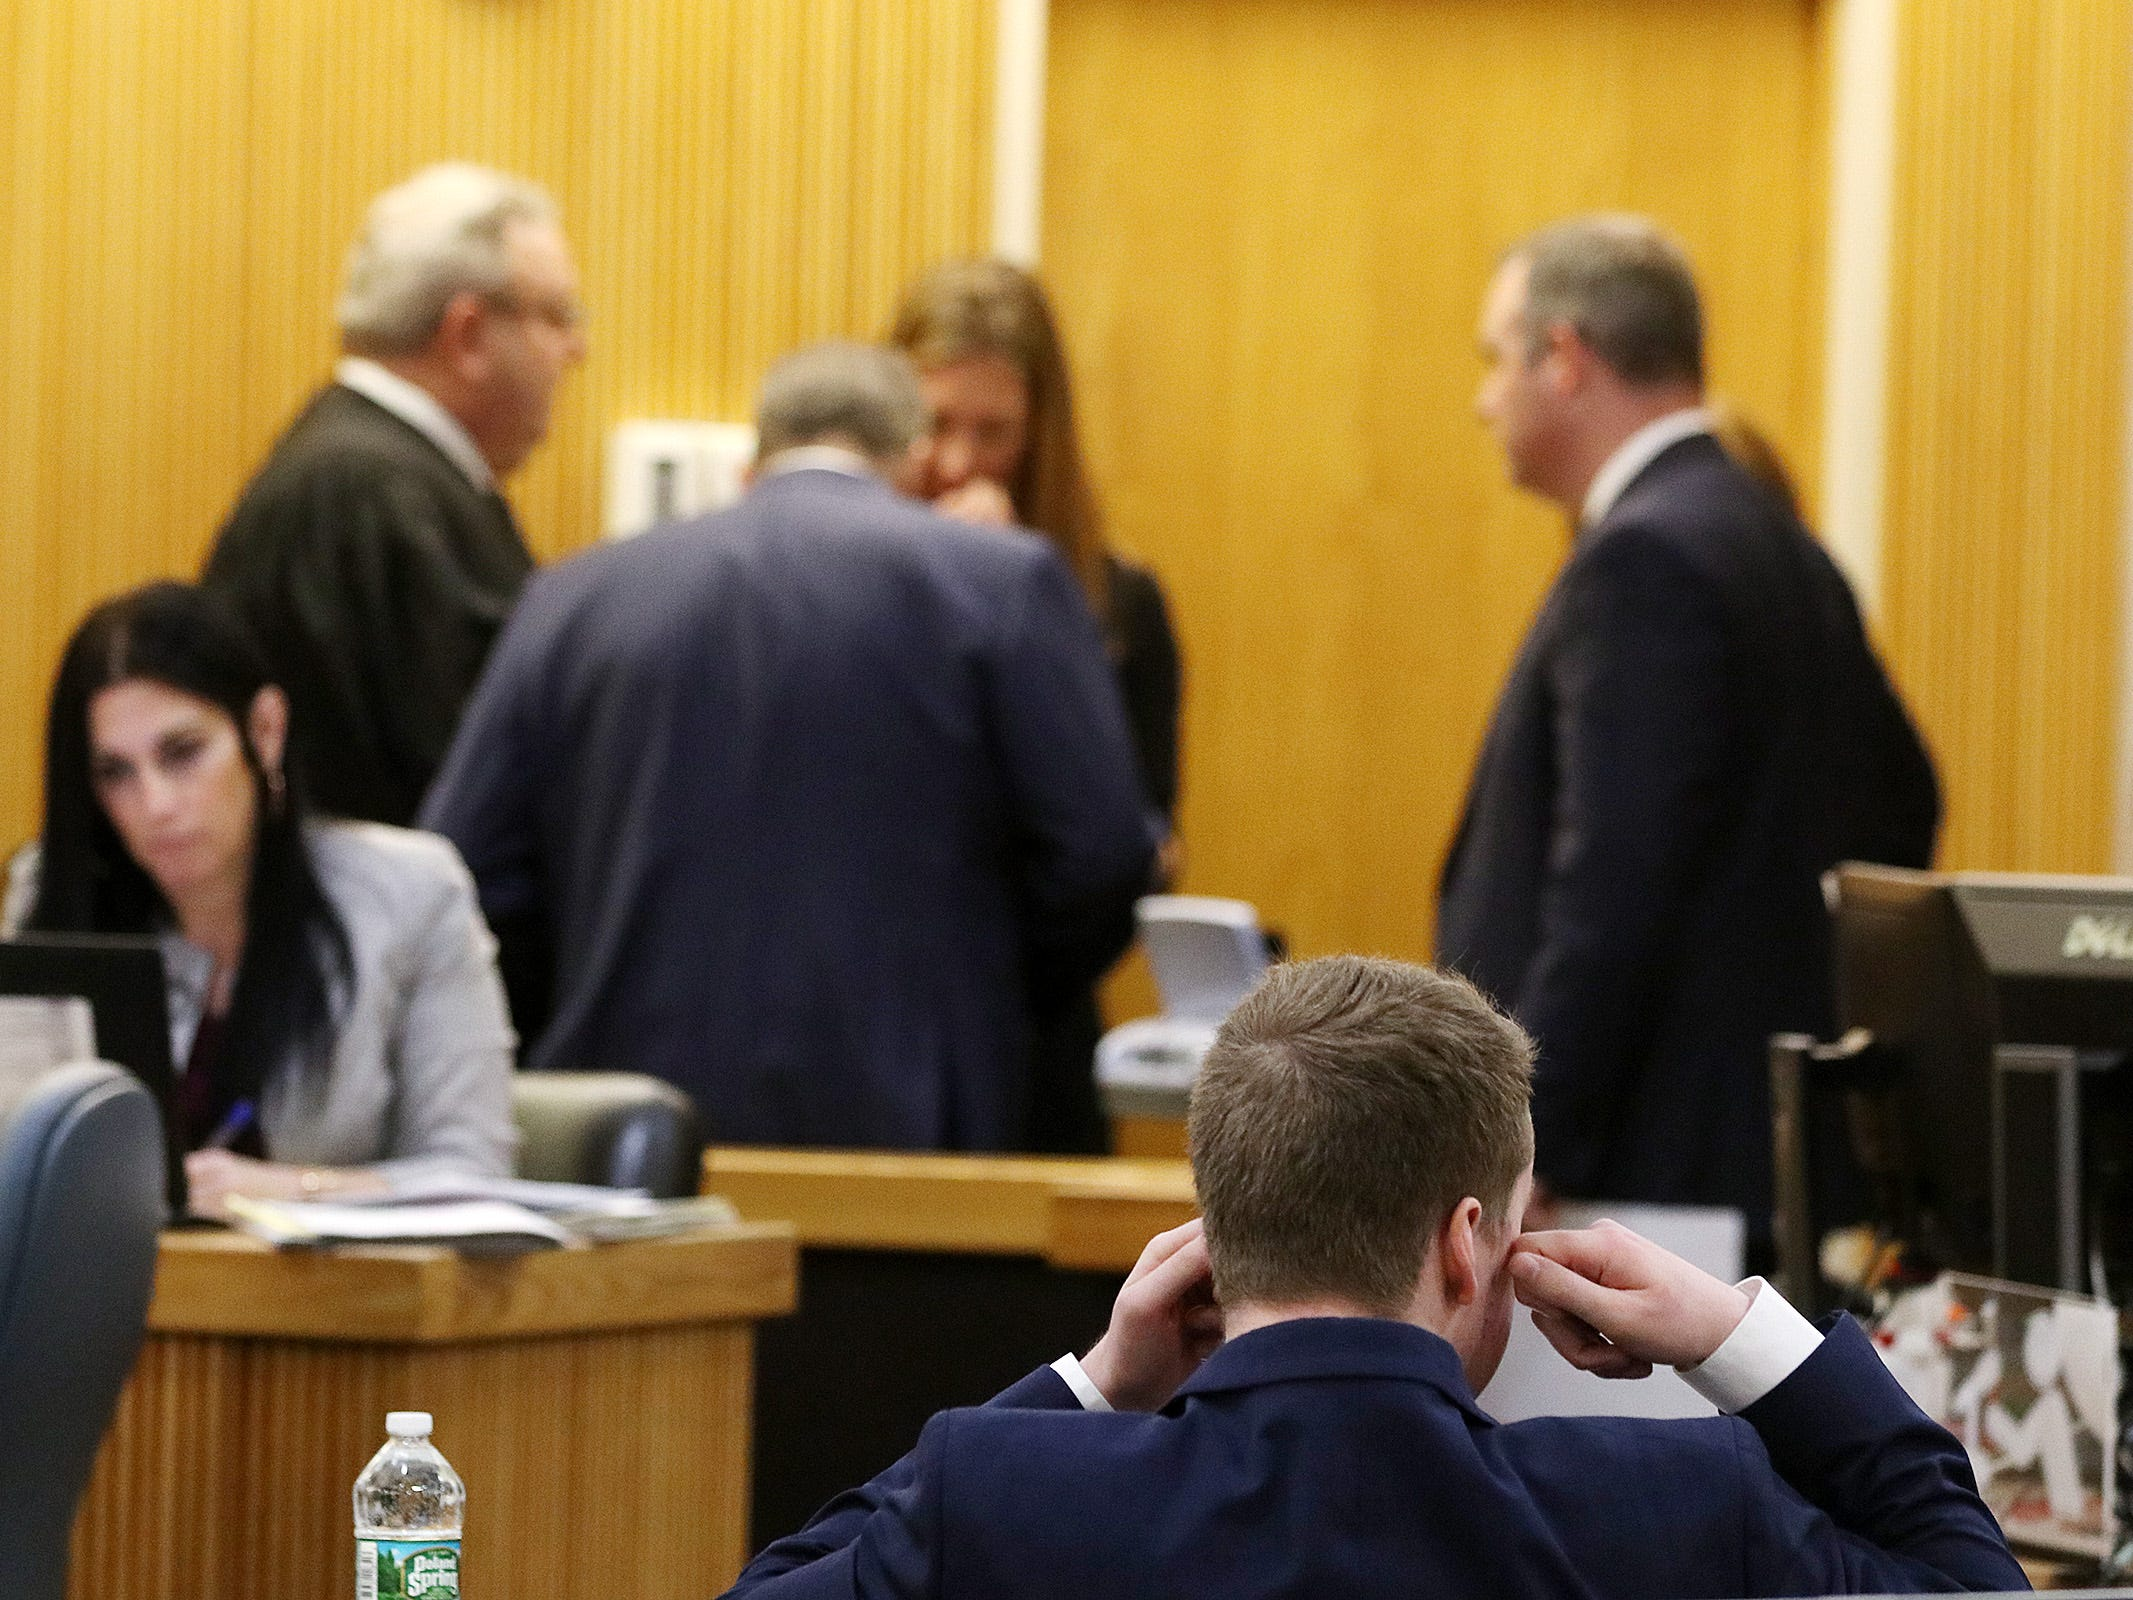 Liam McAtasney, who is charged with the murder of former high school classmate, Sarah Stern, asks for headphones to listen in on sidebar during a charging conference before closing statements during trial before Superior Court Judge Richard W. English at the Monmouth County Courthouse in Freehold, NJ Friday, February 22, 2019.